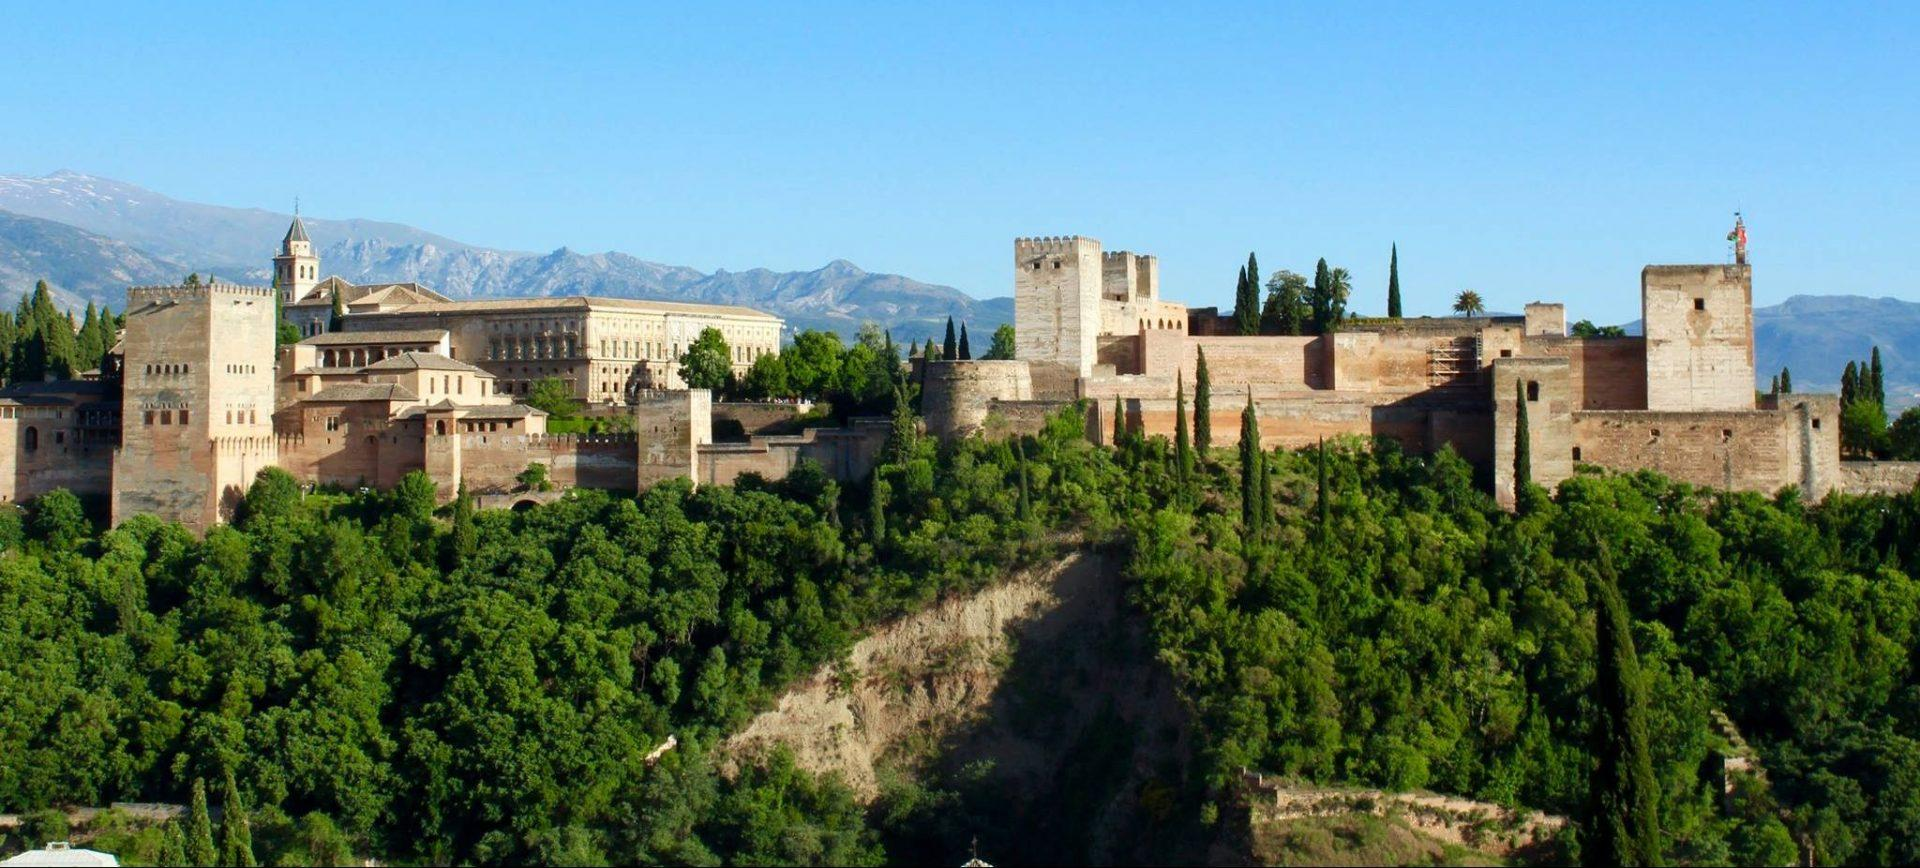 A view of the famous palace of Alhambra. (PHOTO COURTESY OF MARINA POUDRET)